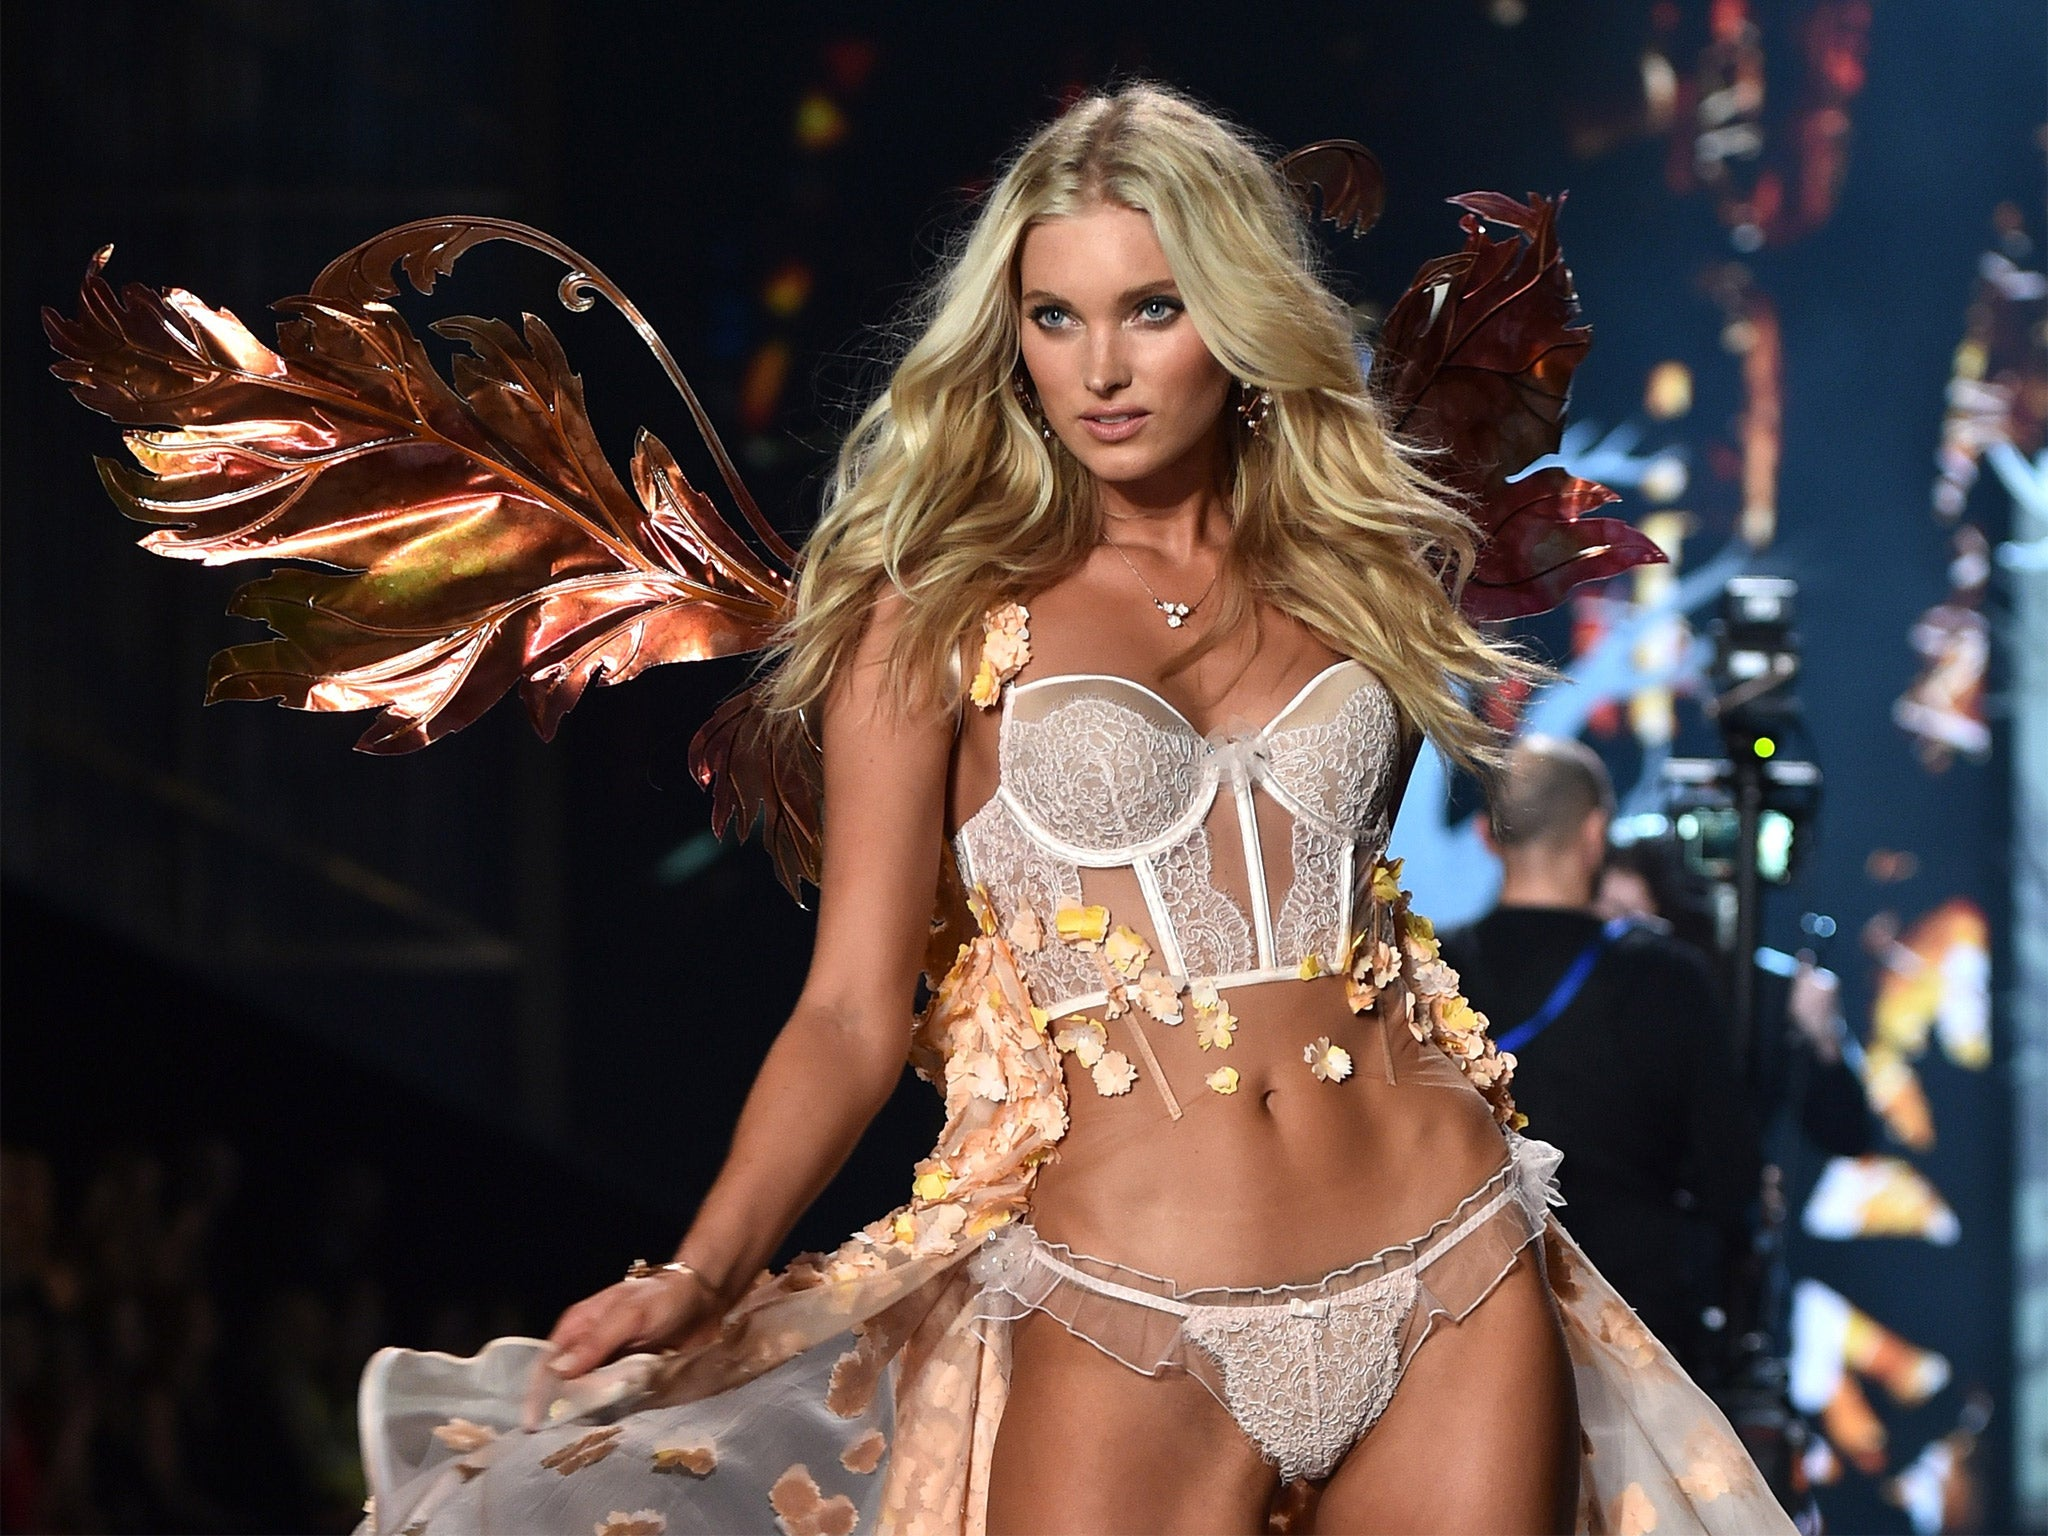 Victoria's Secret 2014 show report: Angels, extravagance and ...